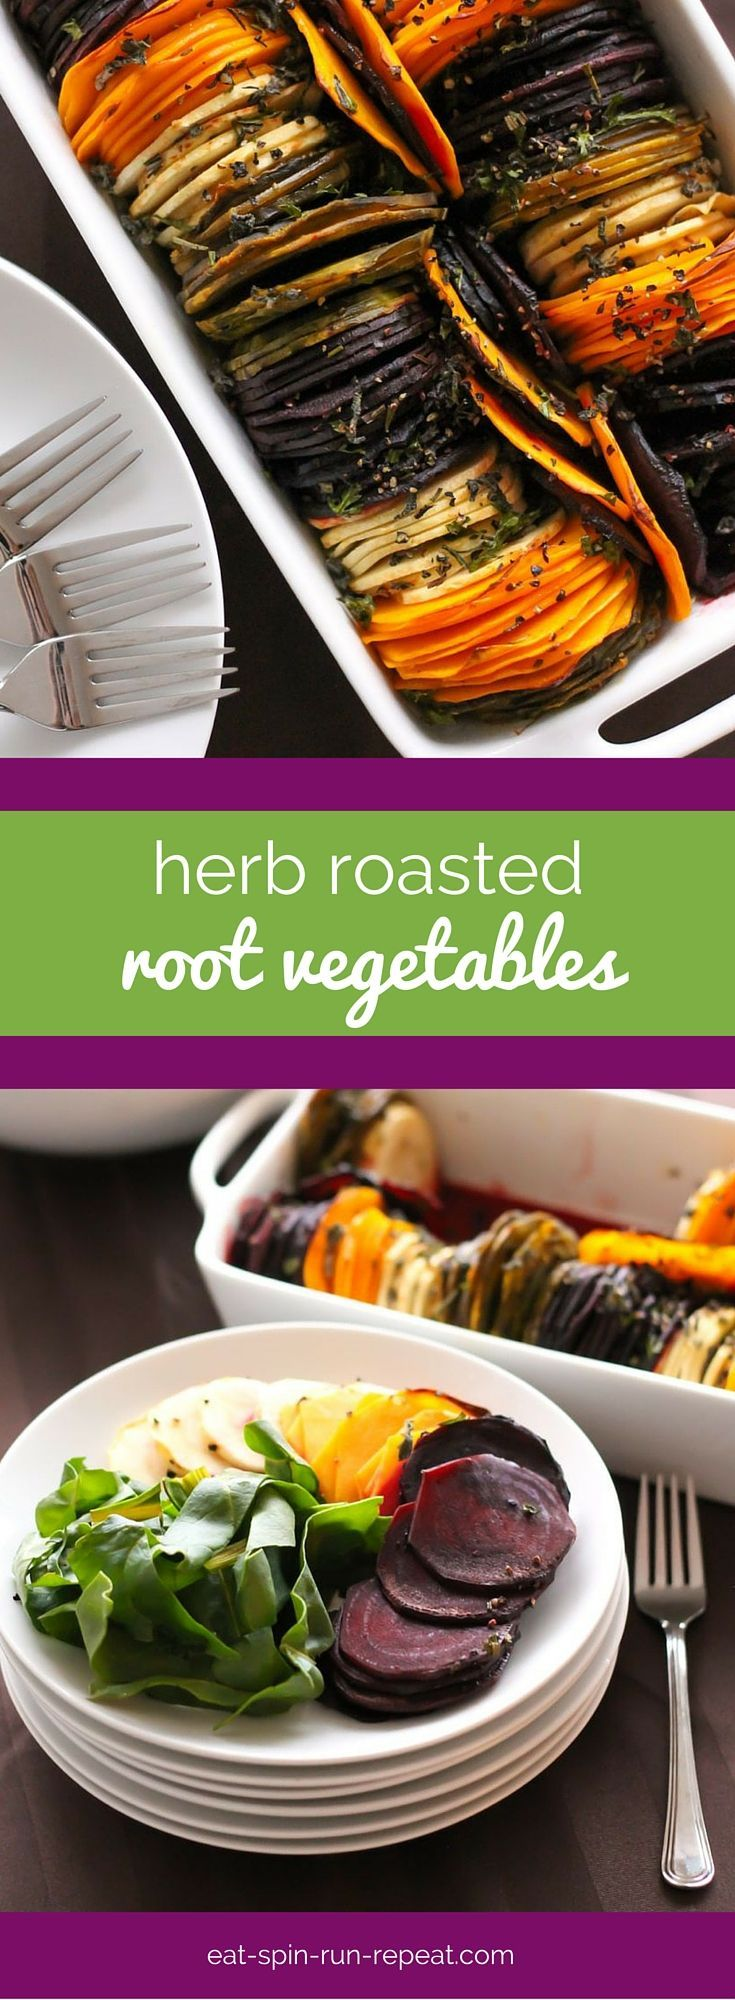 Need a fancy-ish healthy dish to impress your guests over the holidays? These herb roasted root vegetables should do the trick!